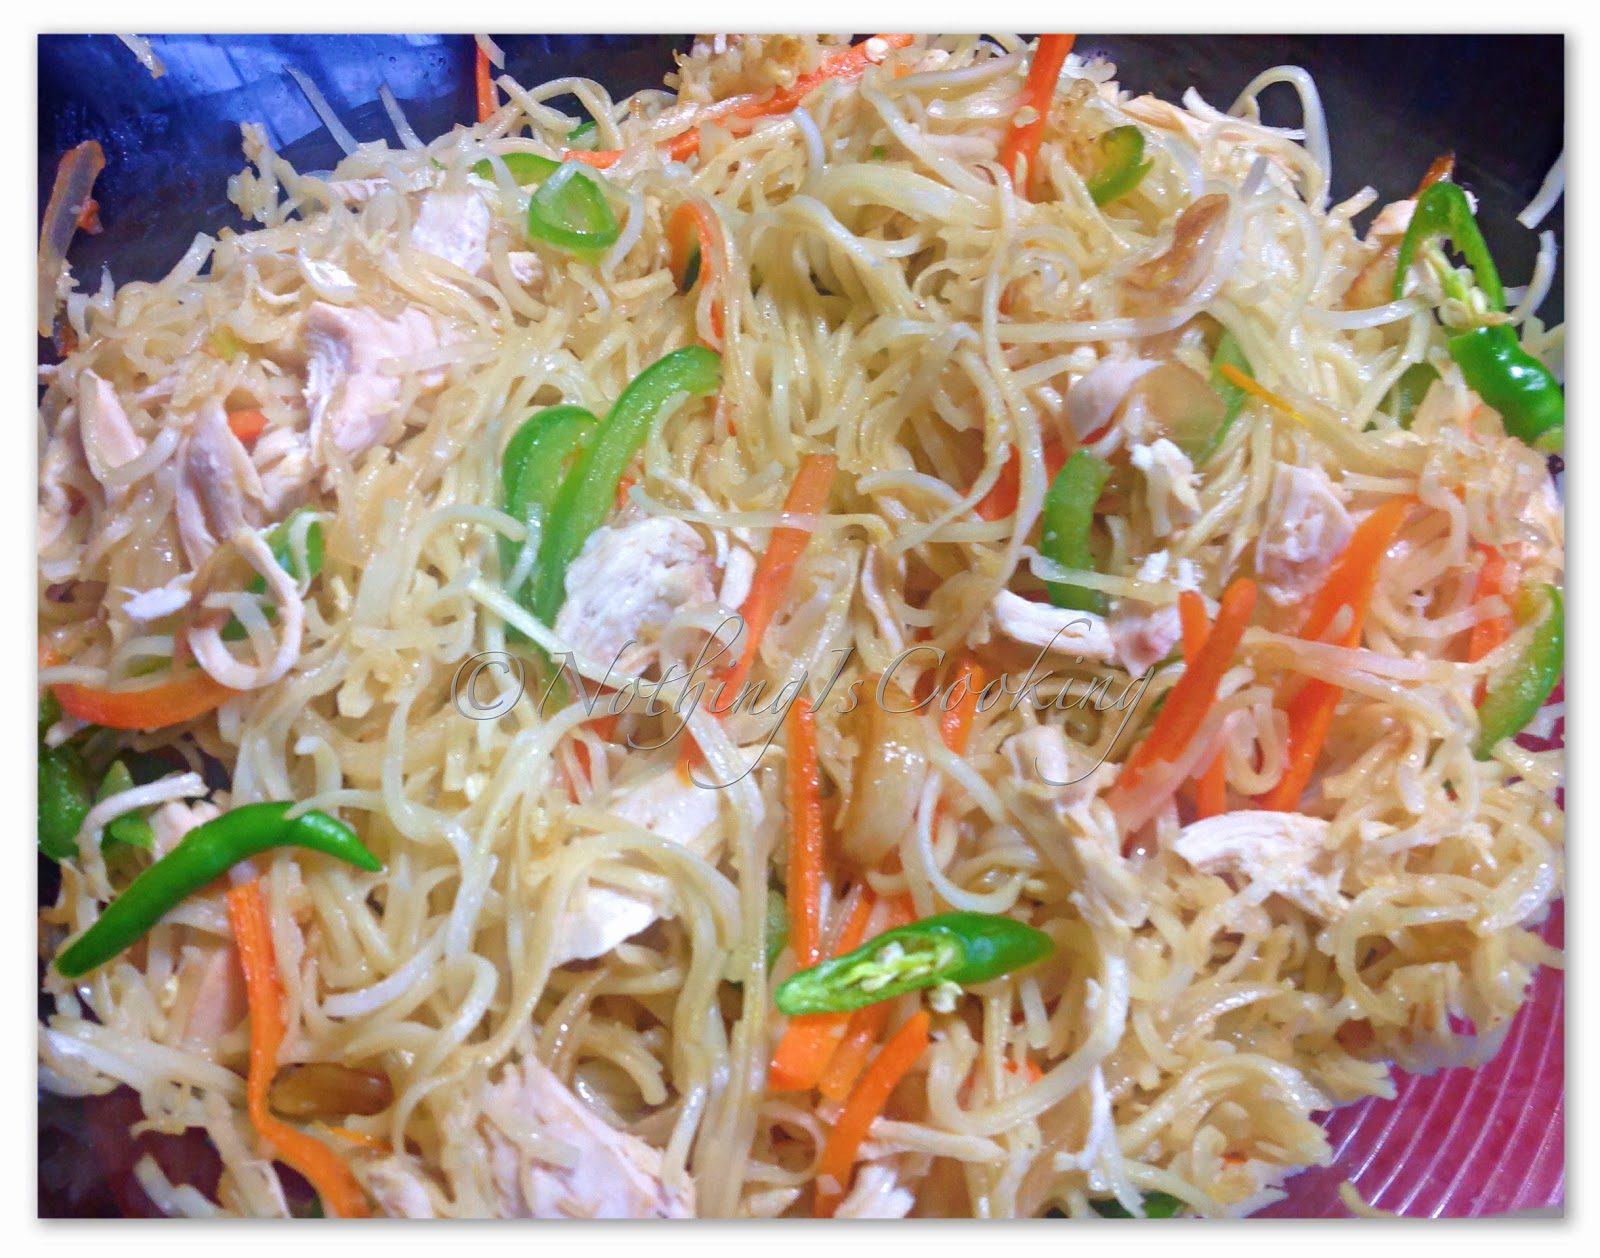 Nothingiscooking the cooking channel chicken hakka noodles the noodles are named after the hakka people of china but this is purely indian they can be made with either chicken or vegetables or a mix of both forumfinder Image collections